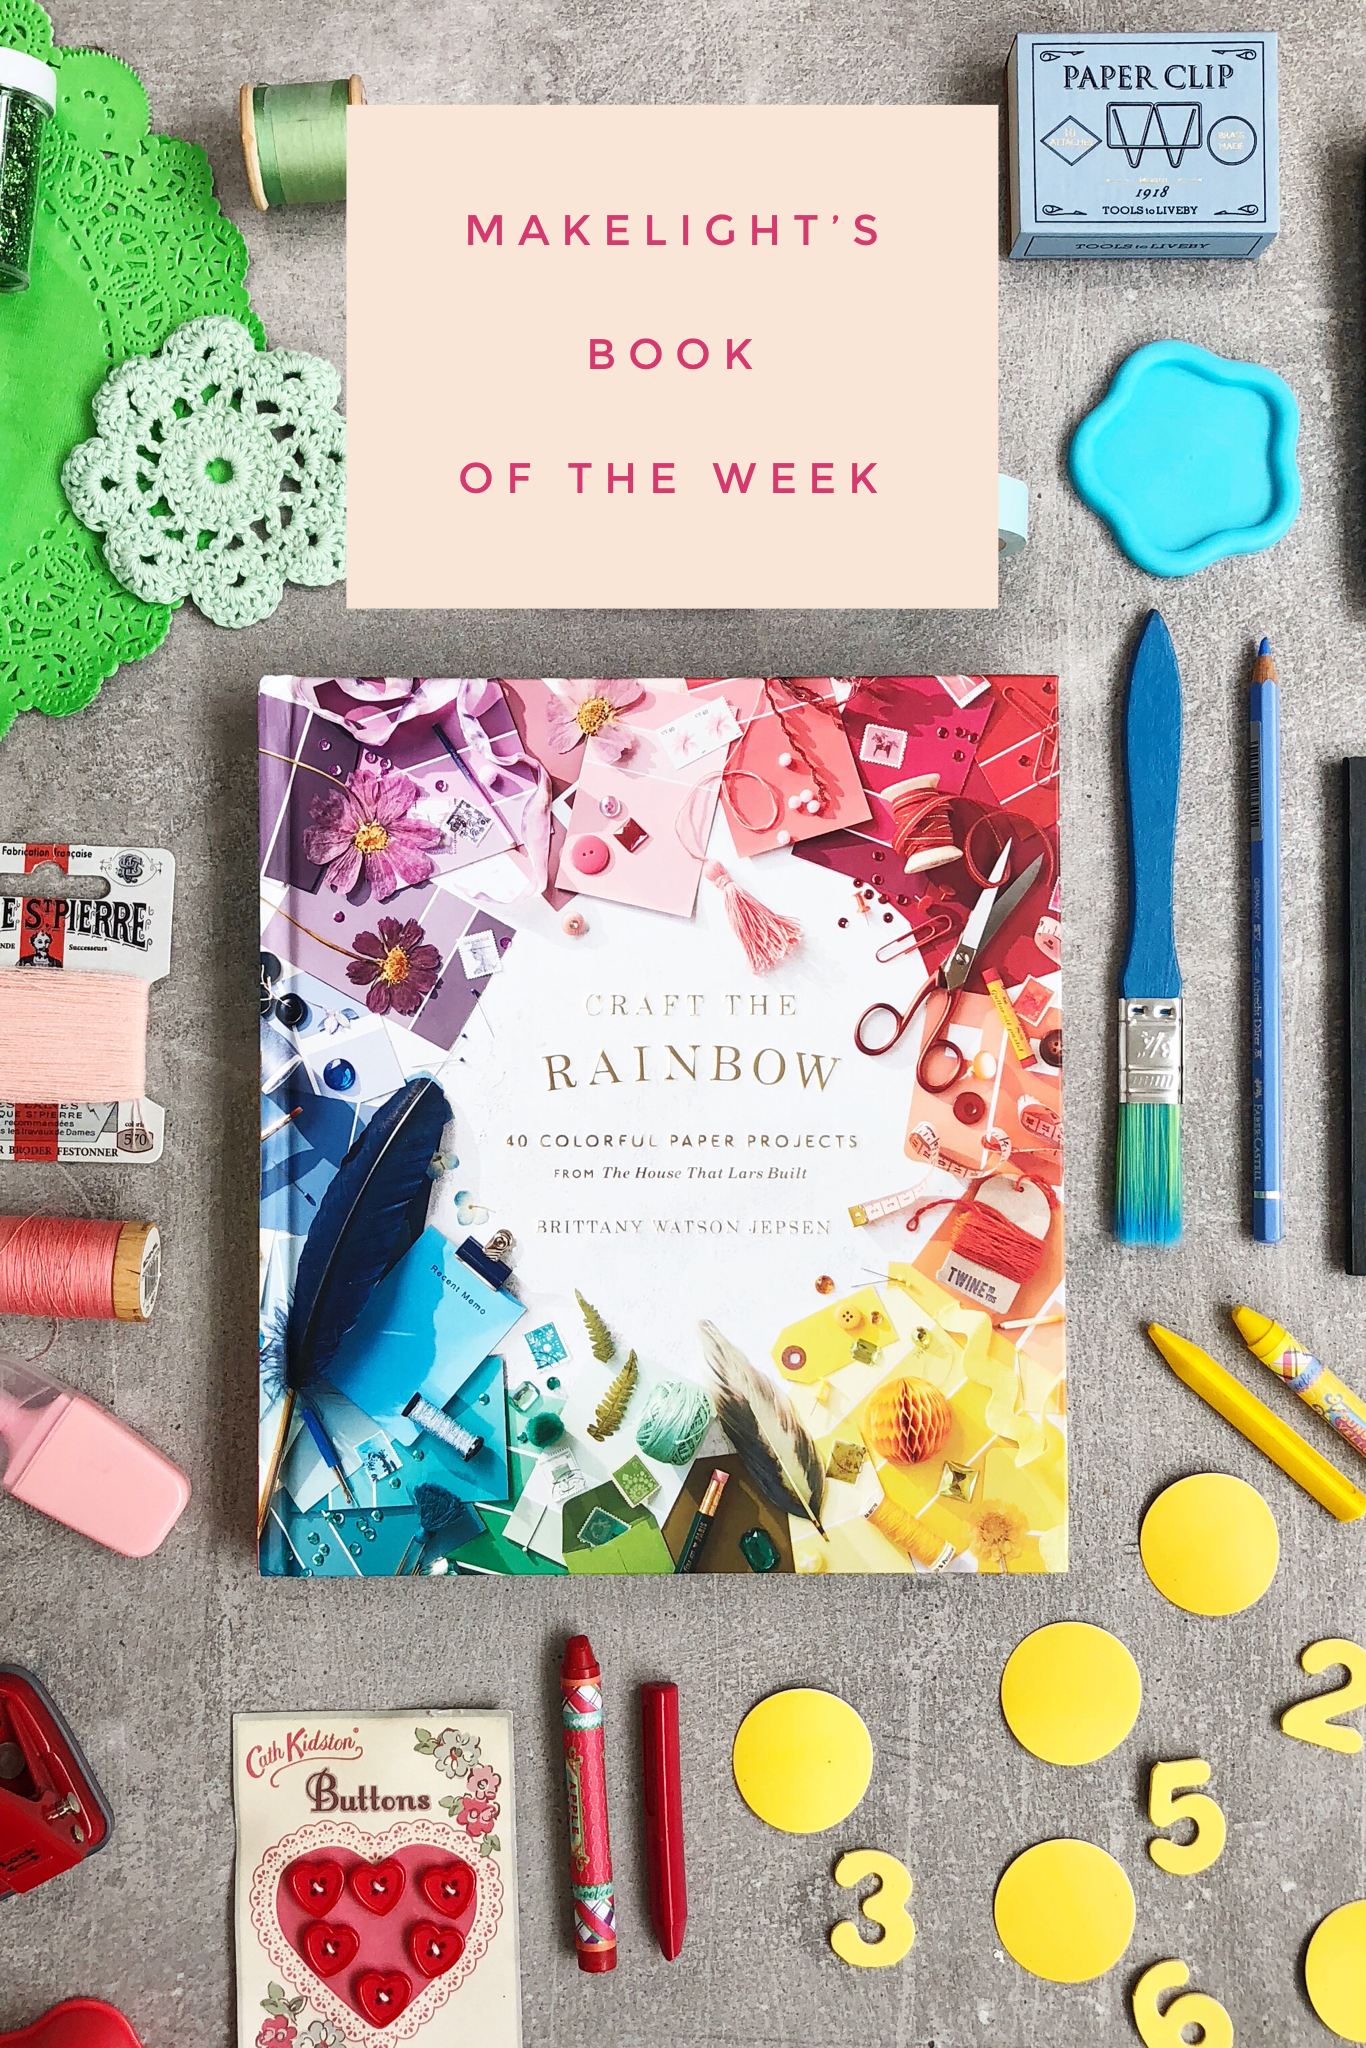 This week's book of the week is Craft The Rainbow